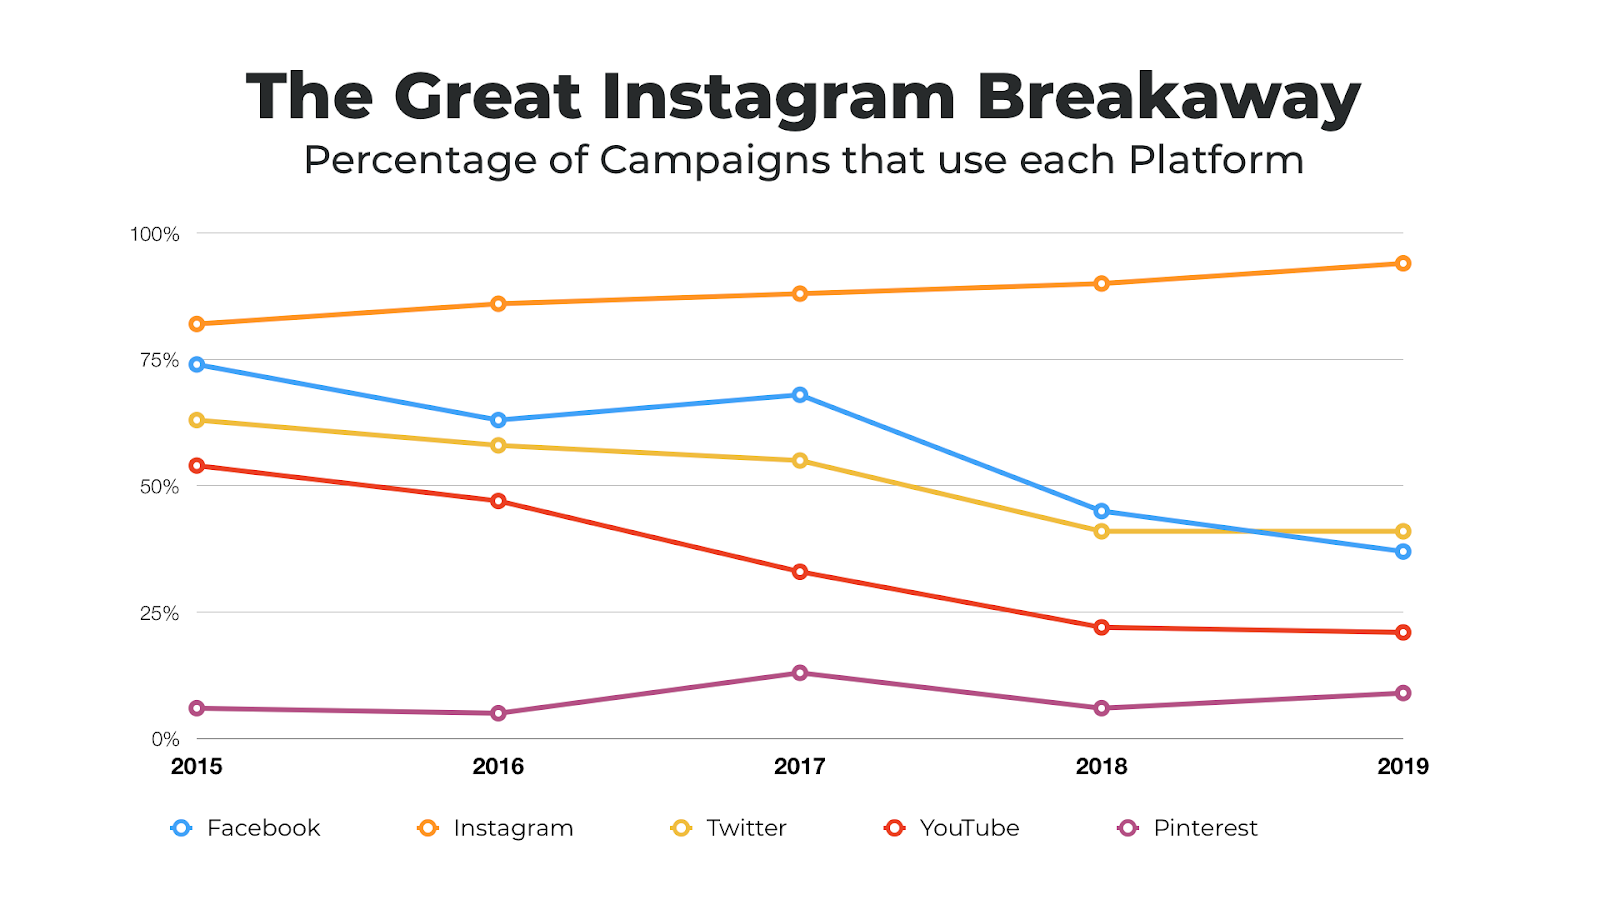 More Influencers Have Started Using Instagram, Will the Removal of Likes Affect That?